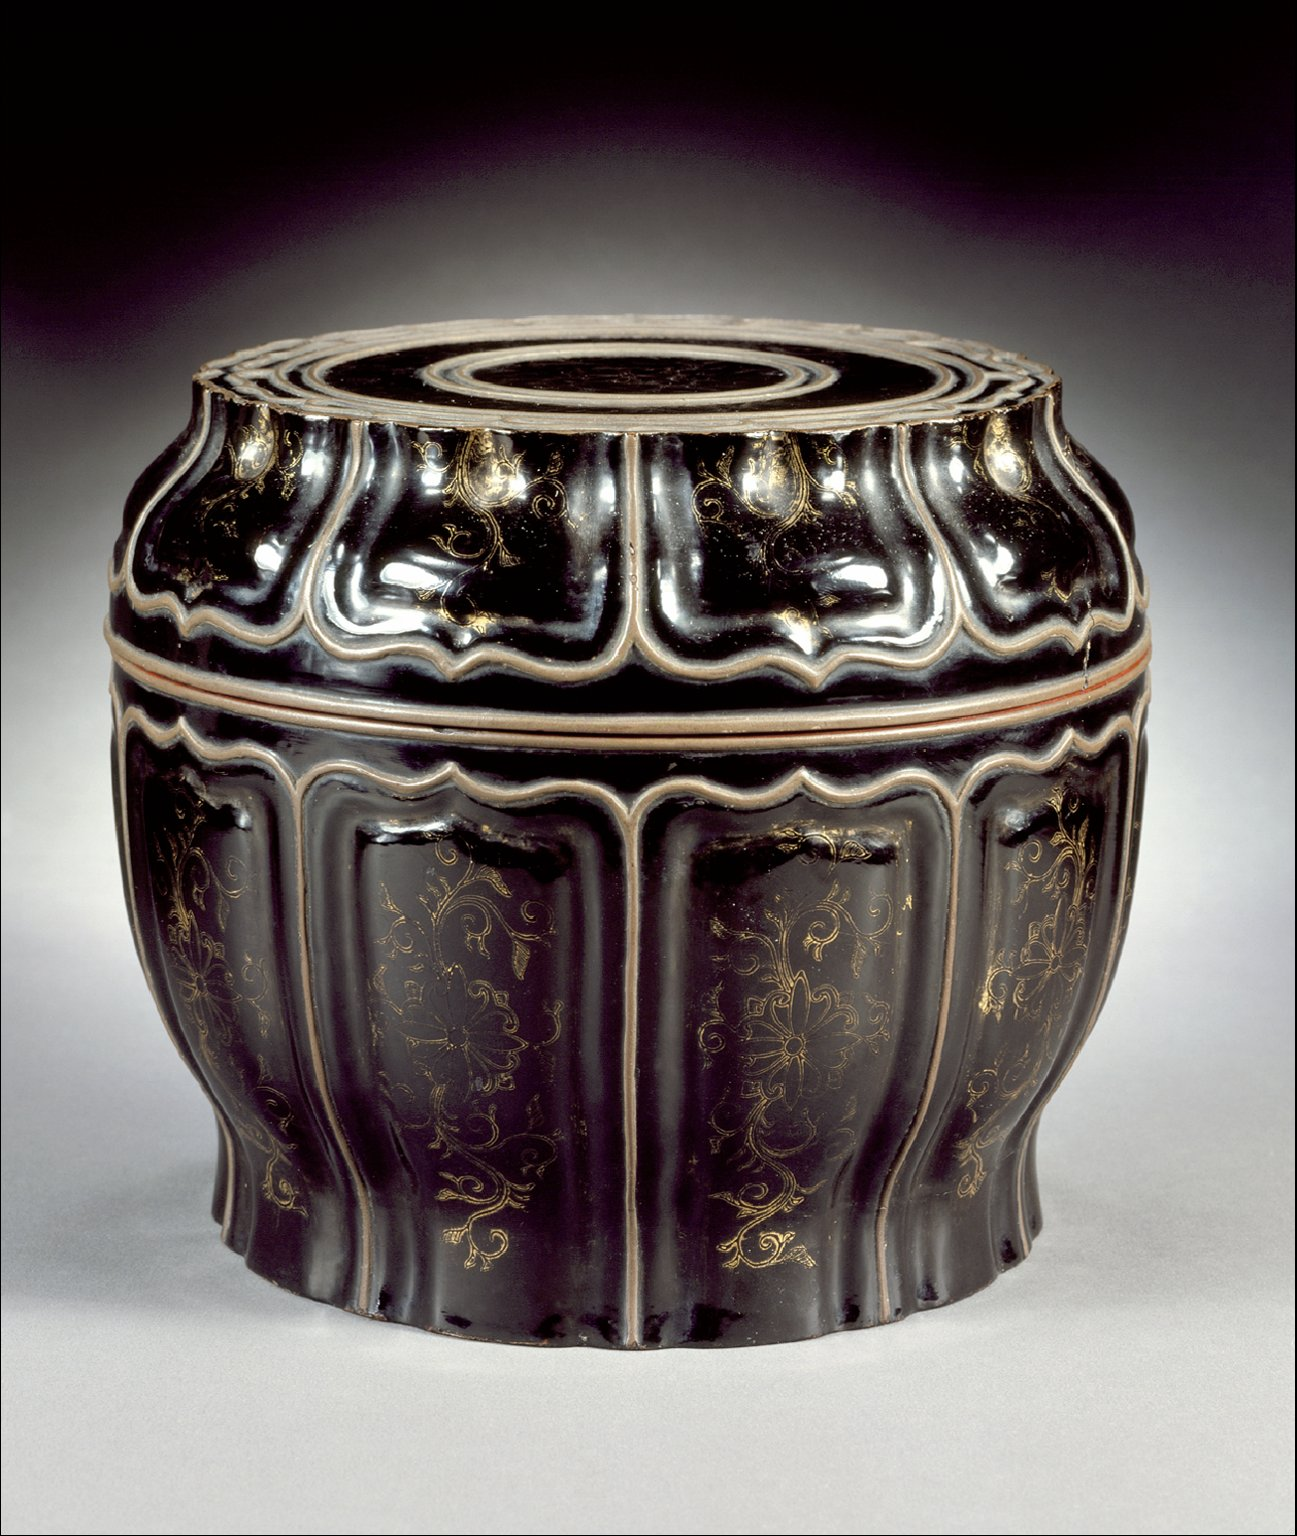 Cosmetic Box (Lian) in the Form of a Lotus Pod with Lotus Scrolls